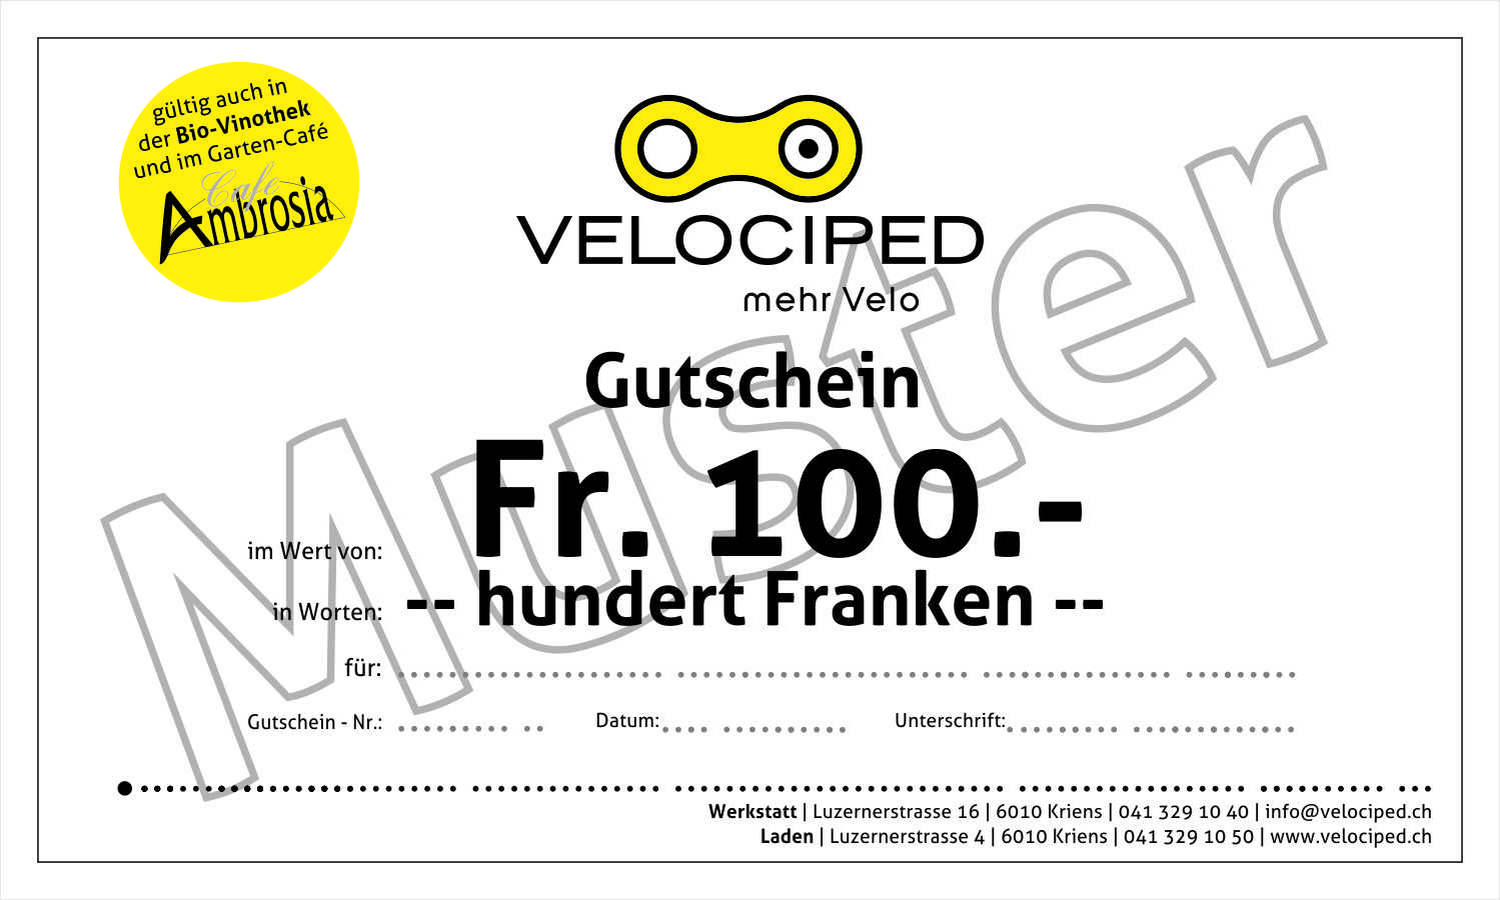 Velociped 100-Franken-Gutschein